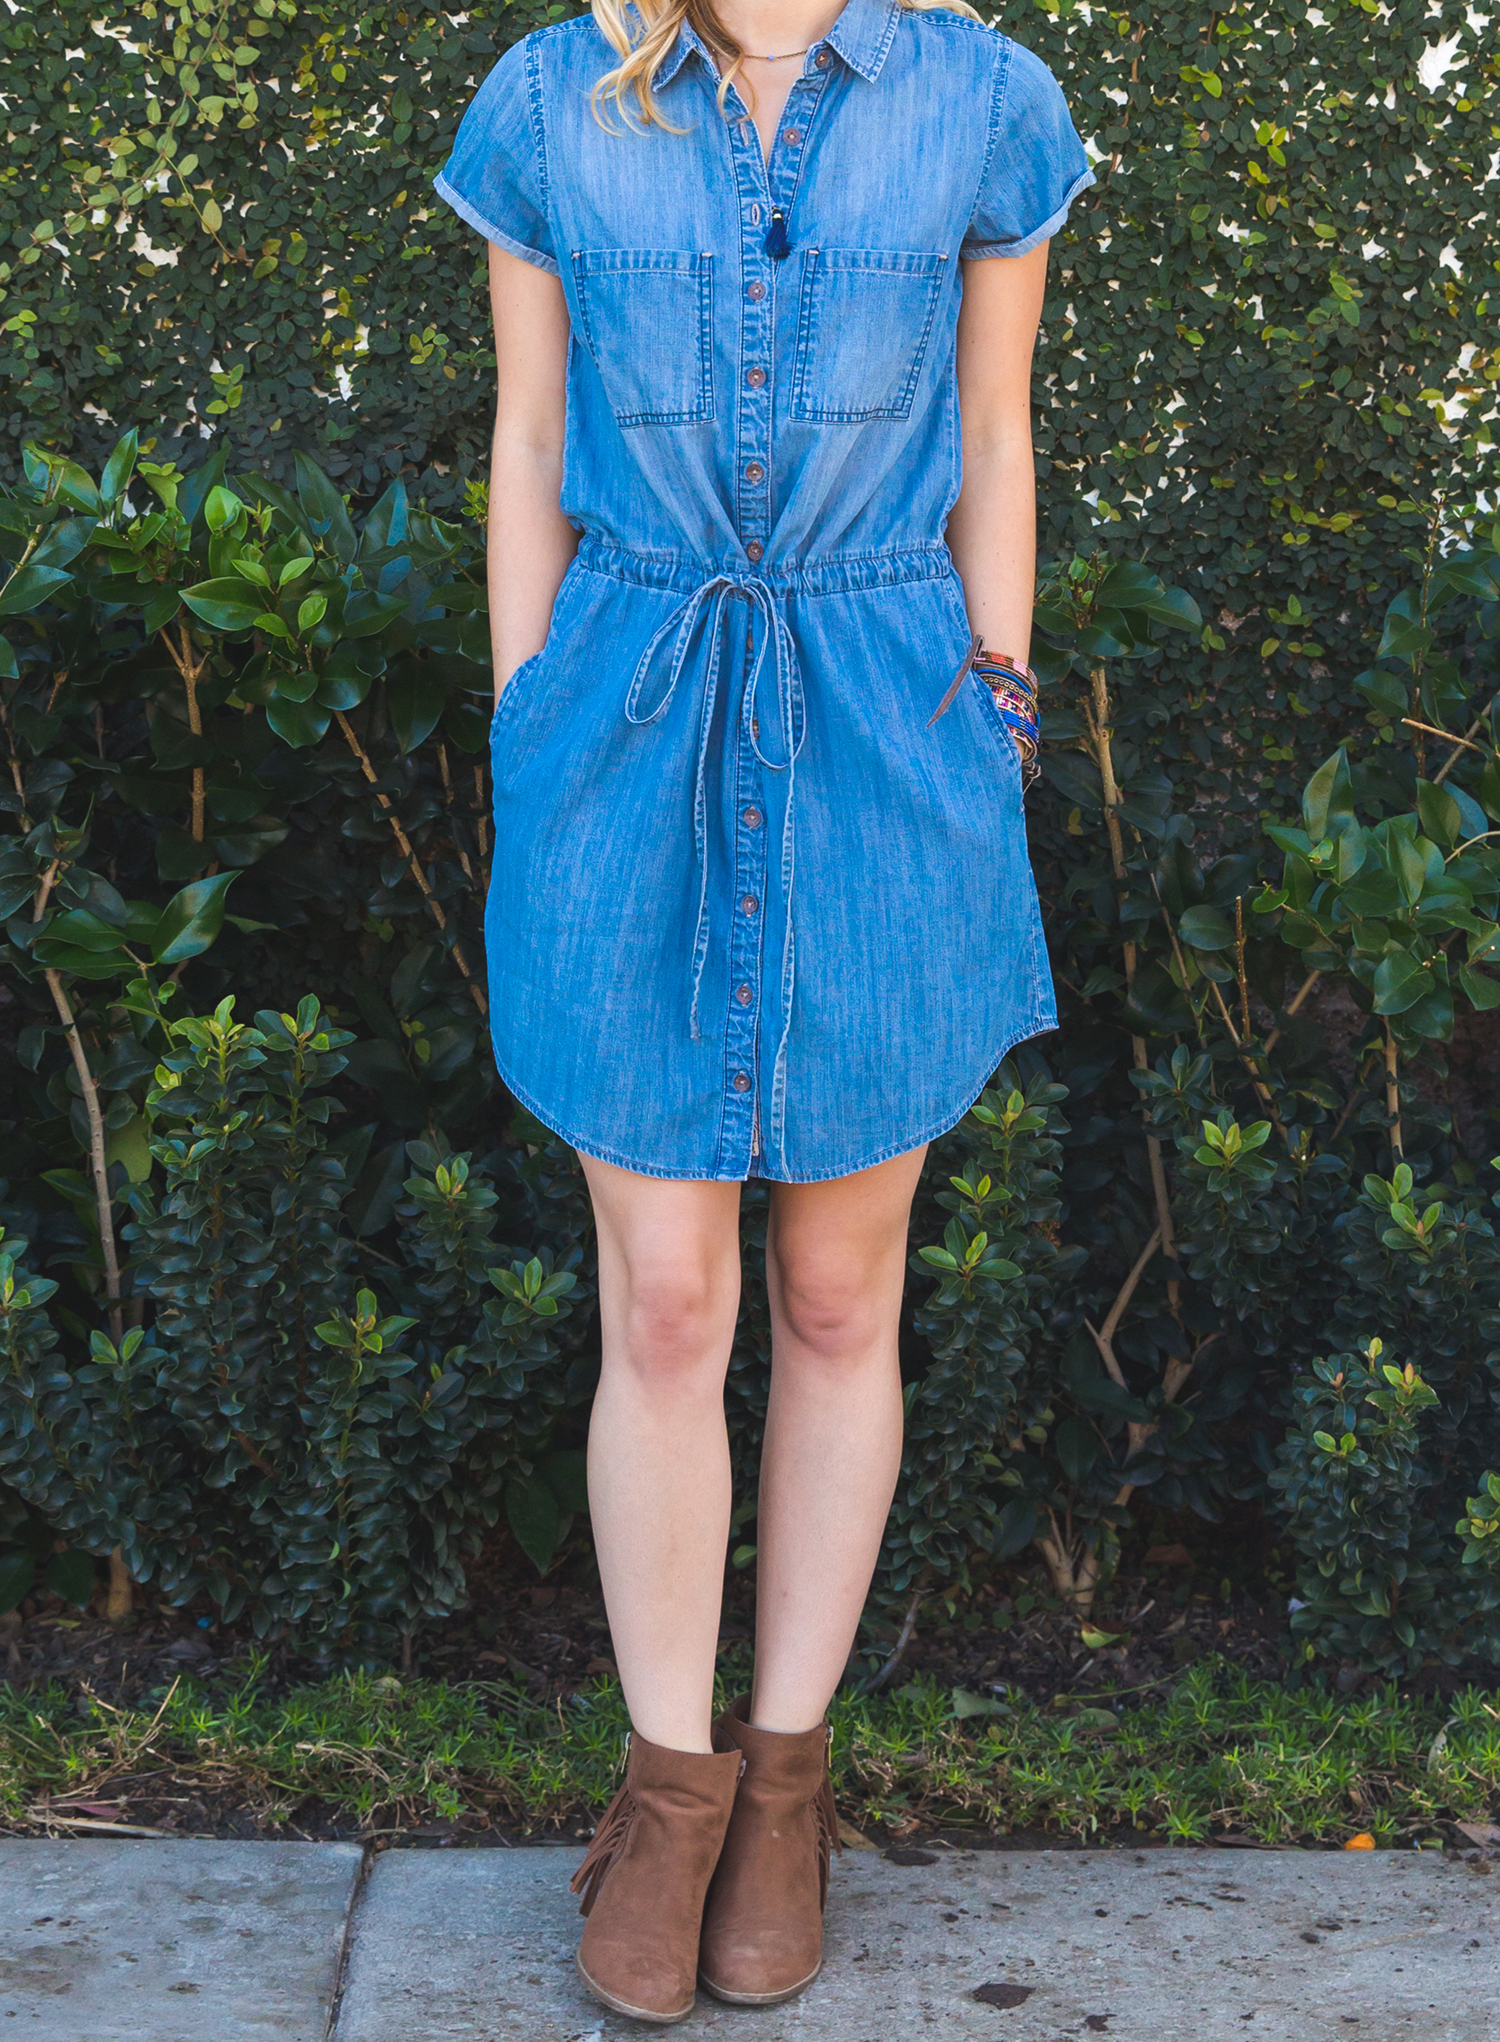 livvyland-blog-olivia-watson-silver-jeans-co-denim-shirtdress-shirt-dress-drawstring-summer-spring-booties-errisson-lawrence-photography-beach-outfit-7